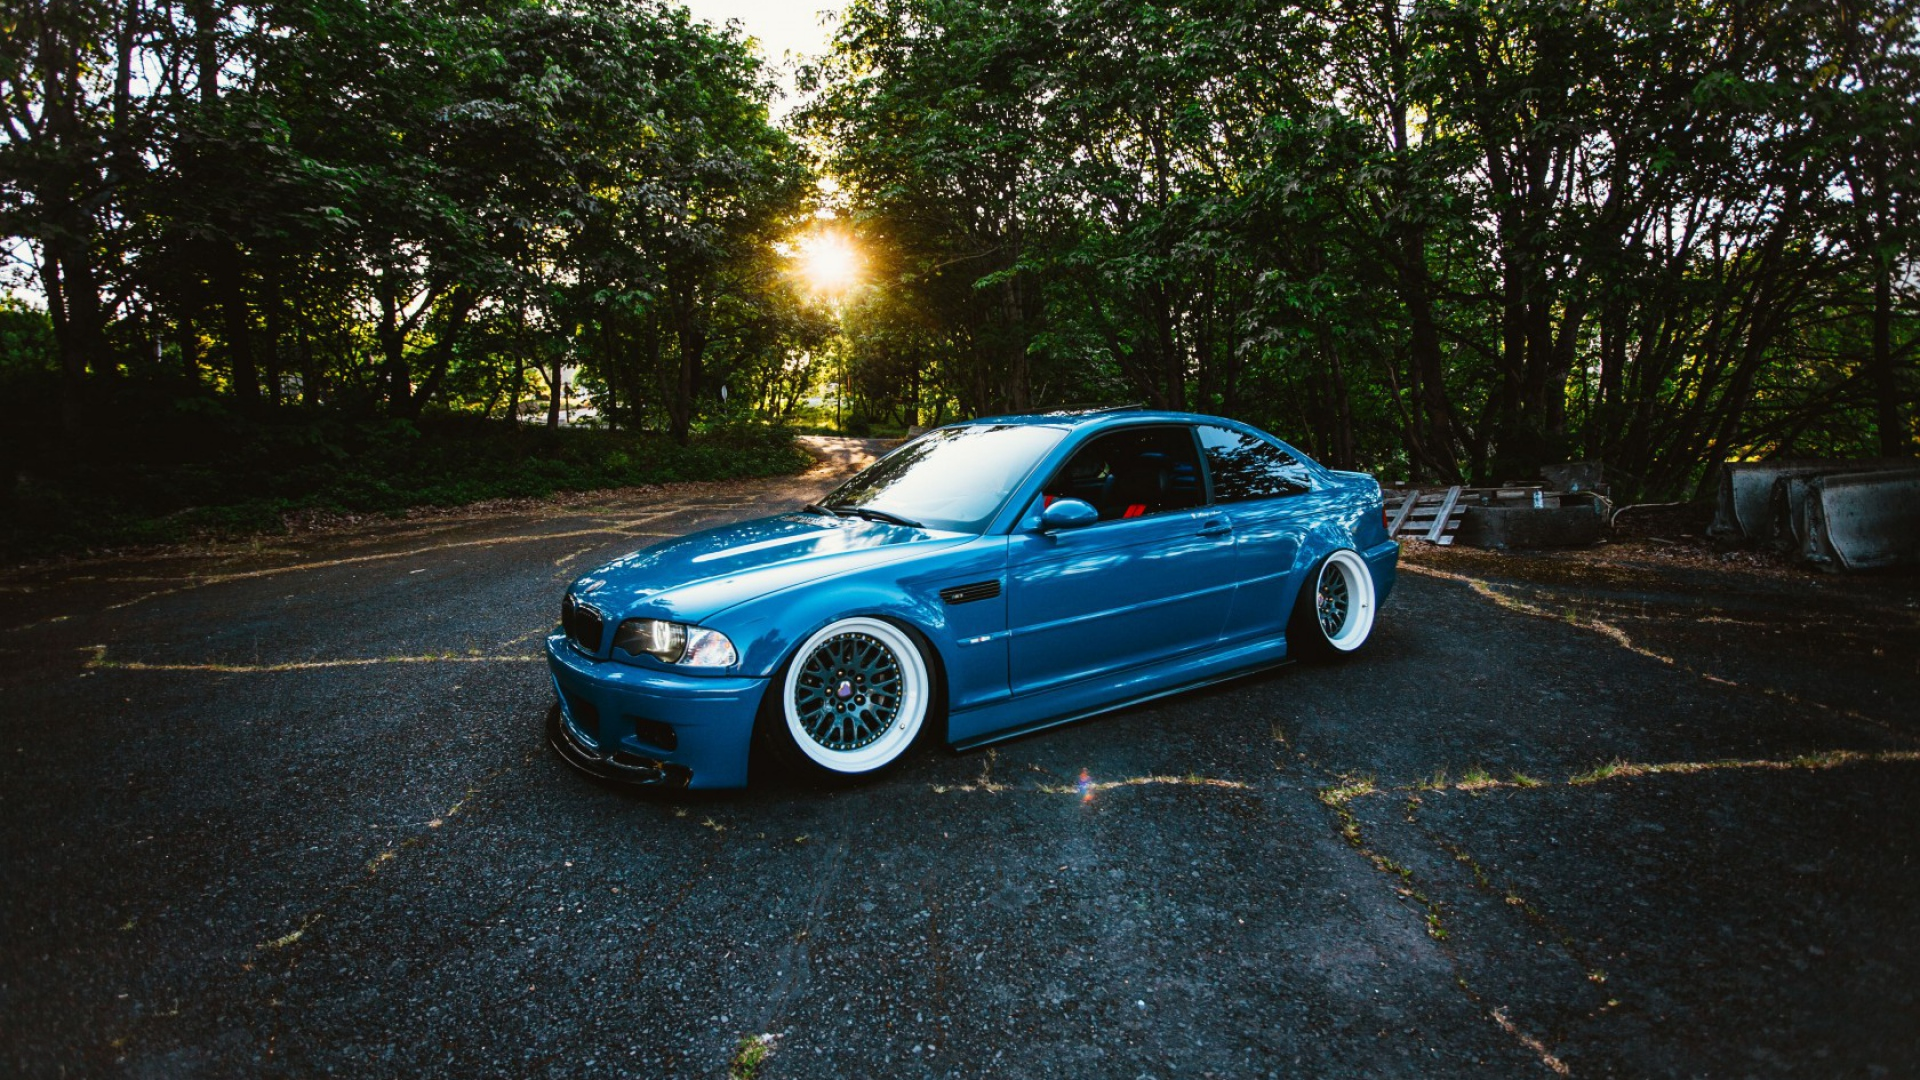 custom bmw m3, hd cars, 4k wallpapers, images, backgrounds, photos